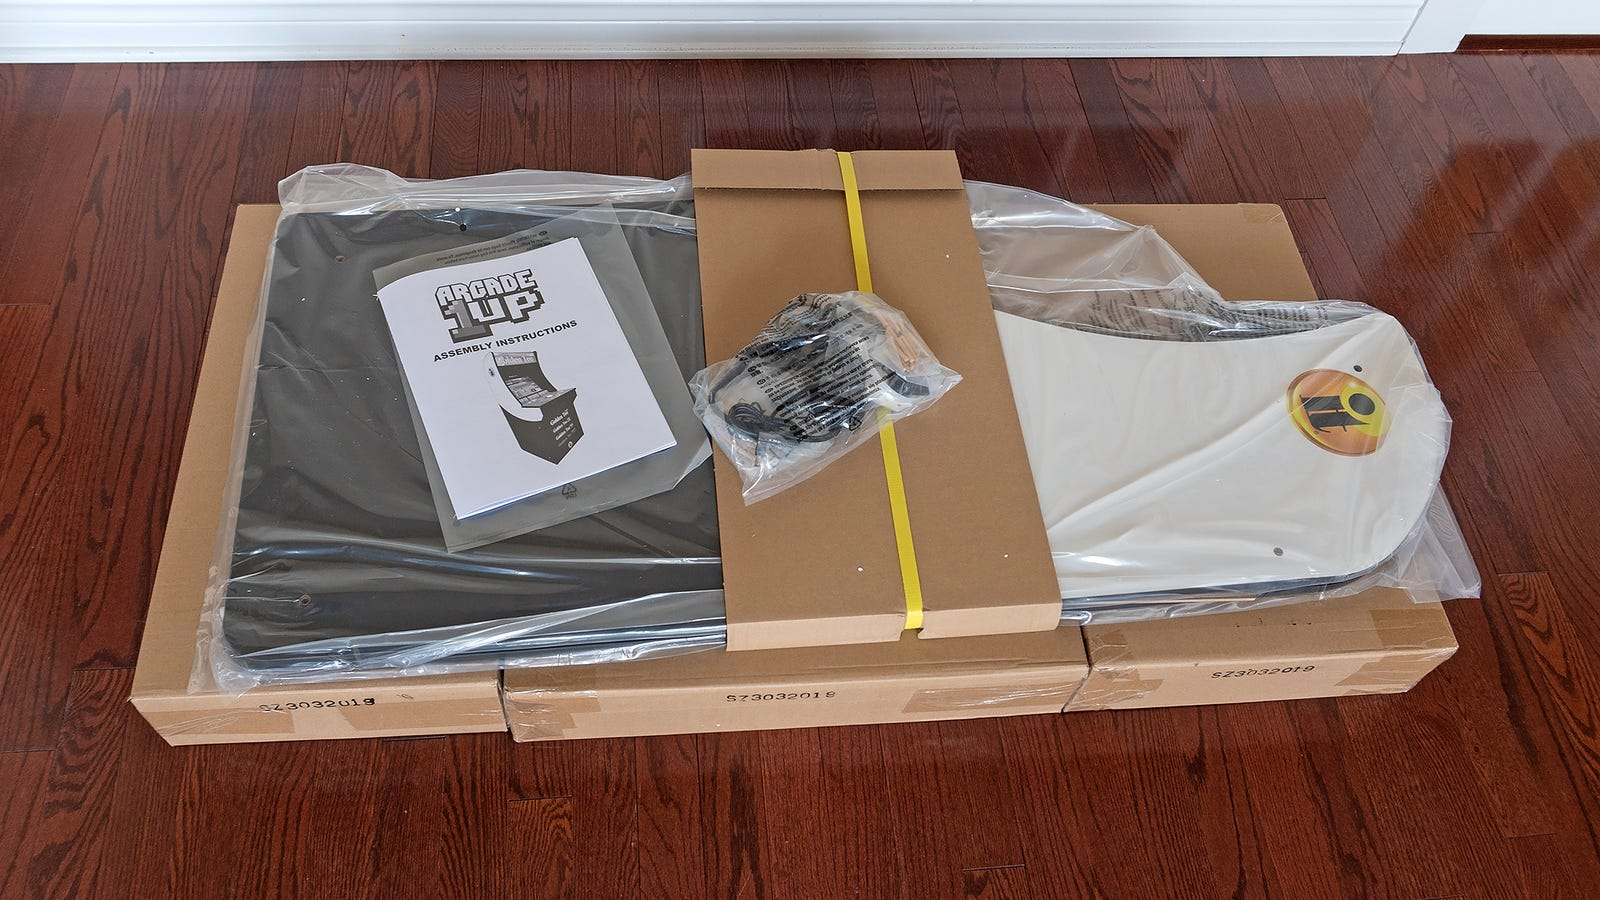 There's a lot of boxes in boxes with these kits, so as with an Ikea run, you're left with a lot of material to recycle.